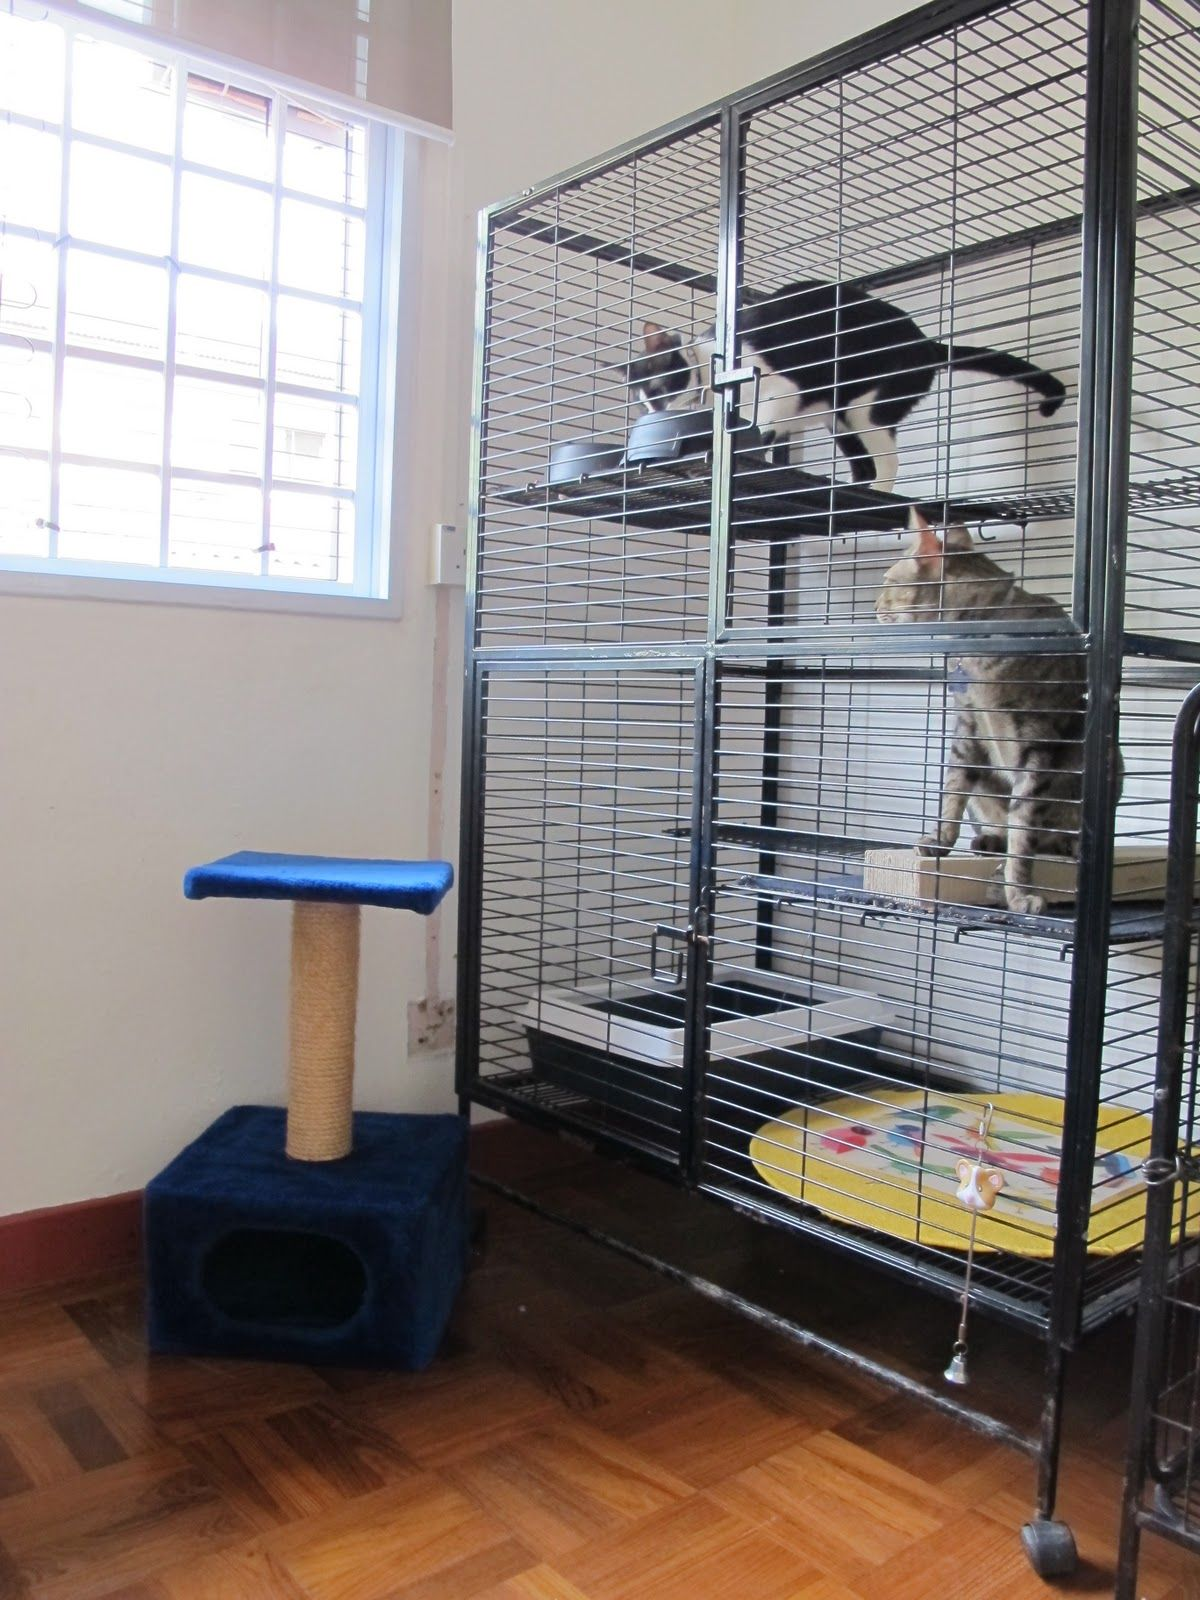 Cages Can Comfortably House 2 To 3 Cats With 2 Large Platforms Click Image For More Details Catcages Cat Enclosure Cat Cages Pet Cage